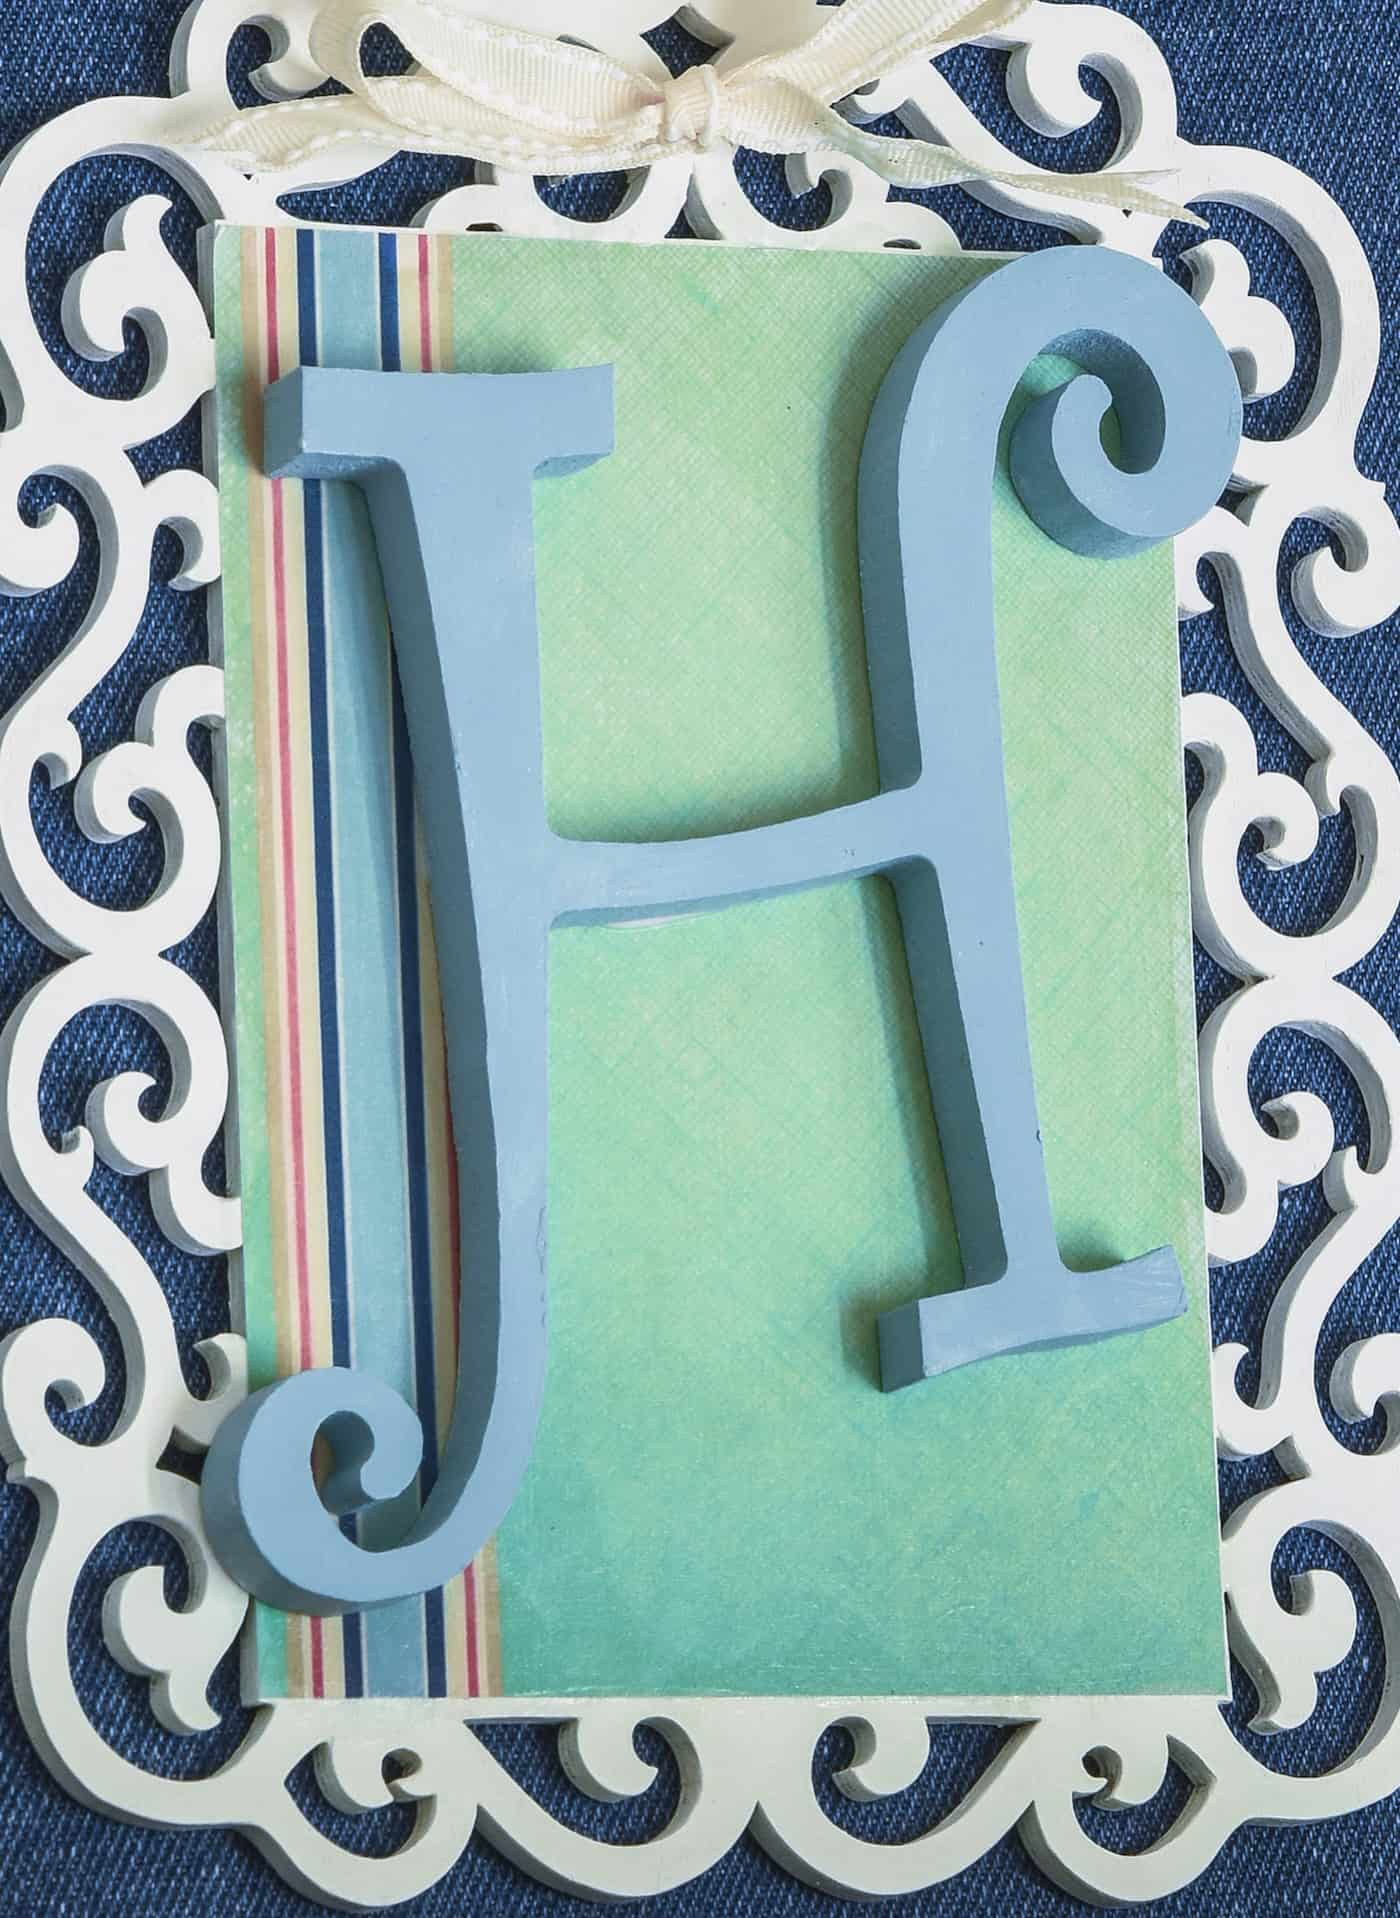 Add a unique, personalized touch to your home decor with this monogram canvas! It's easy to make with a few simple supplies including Mod Podge.